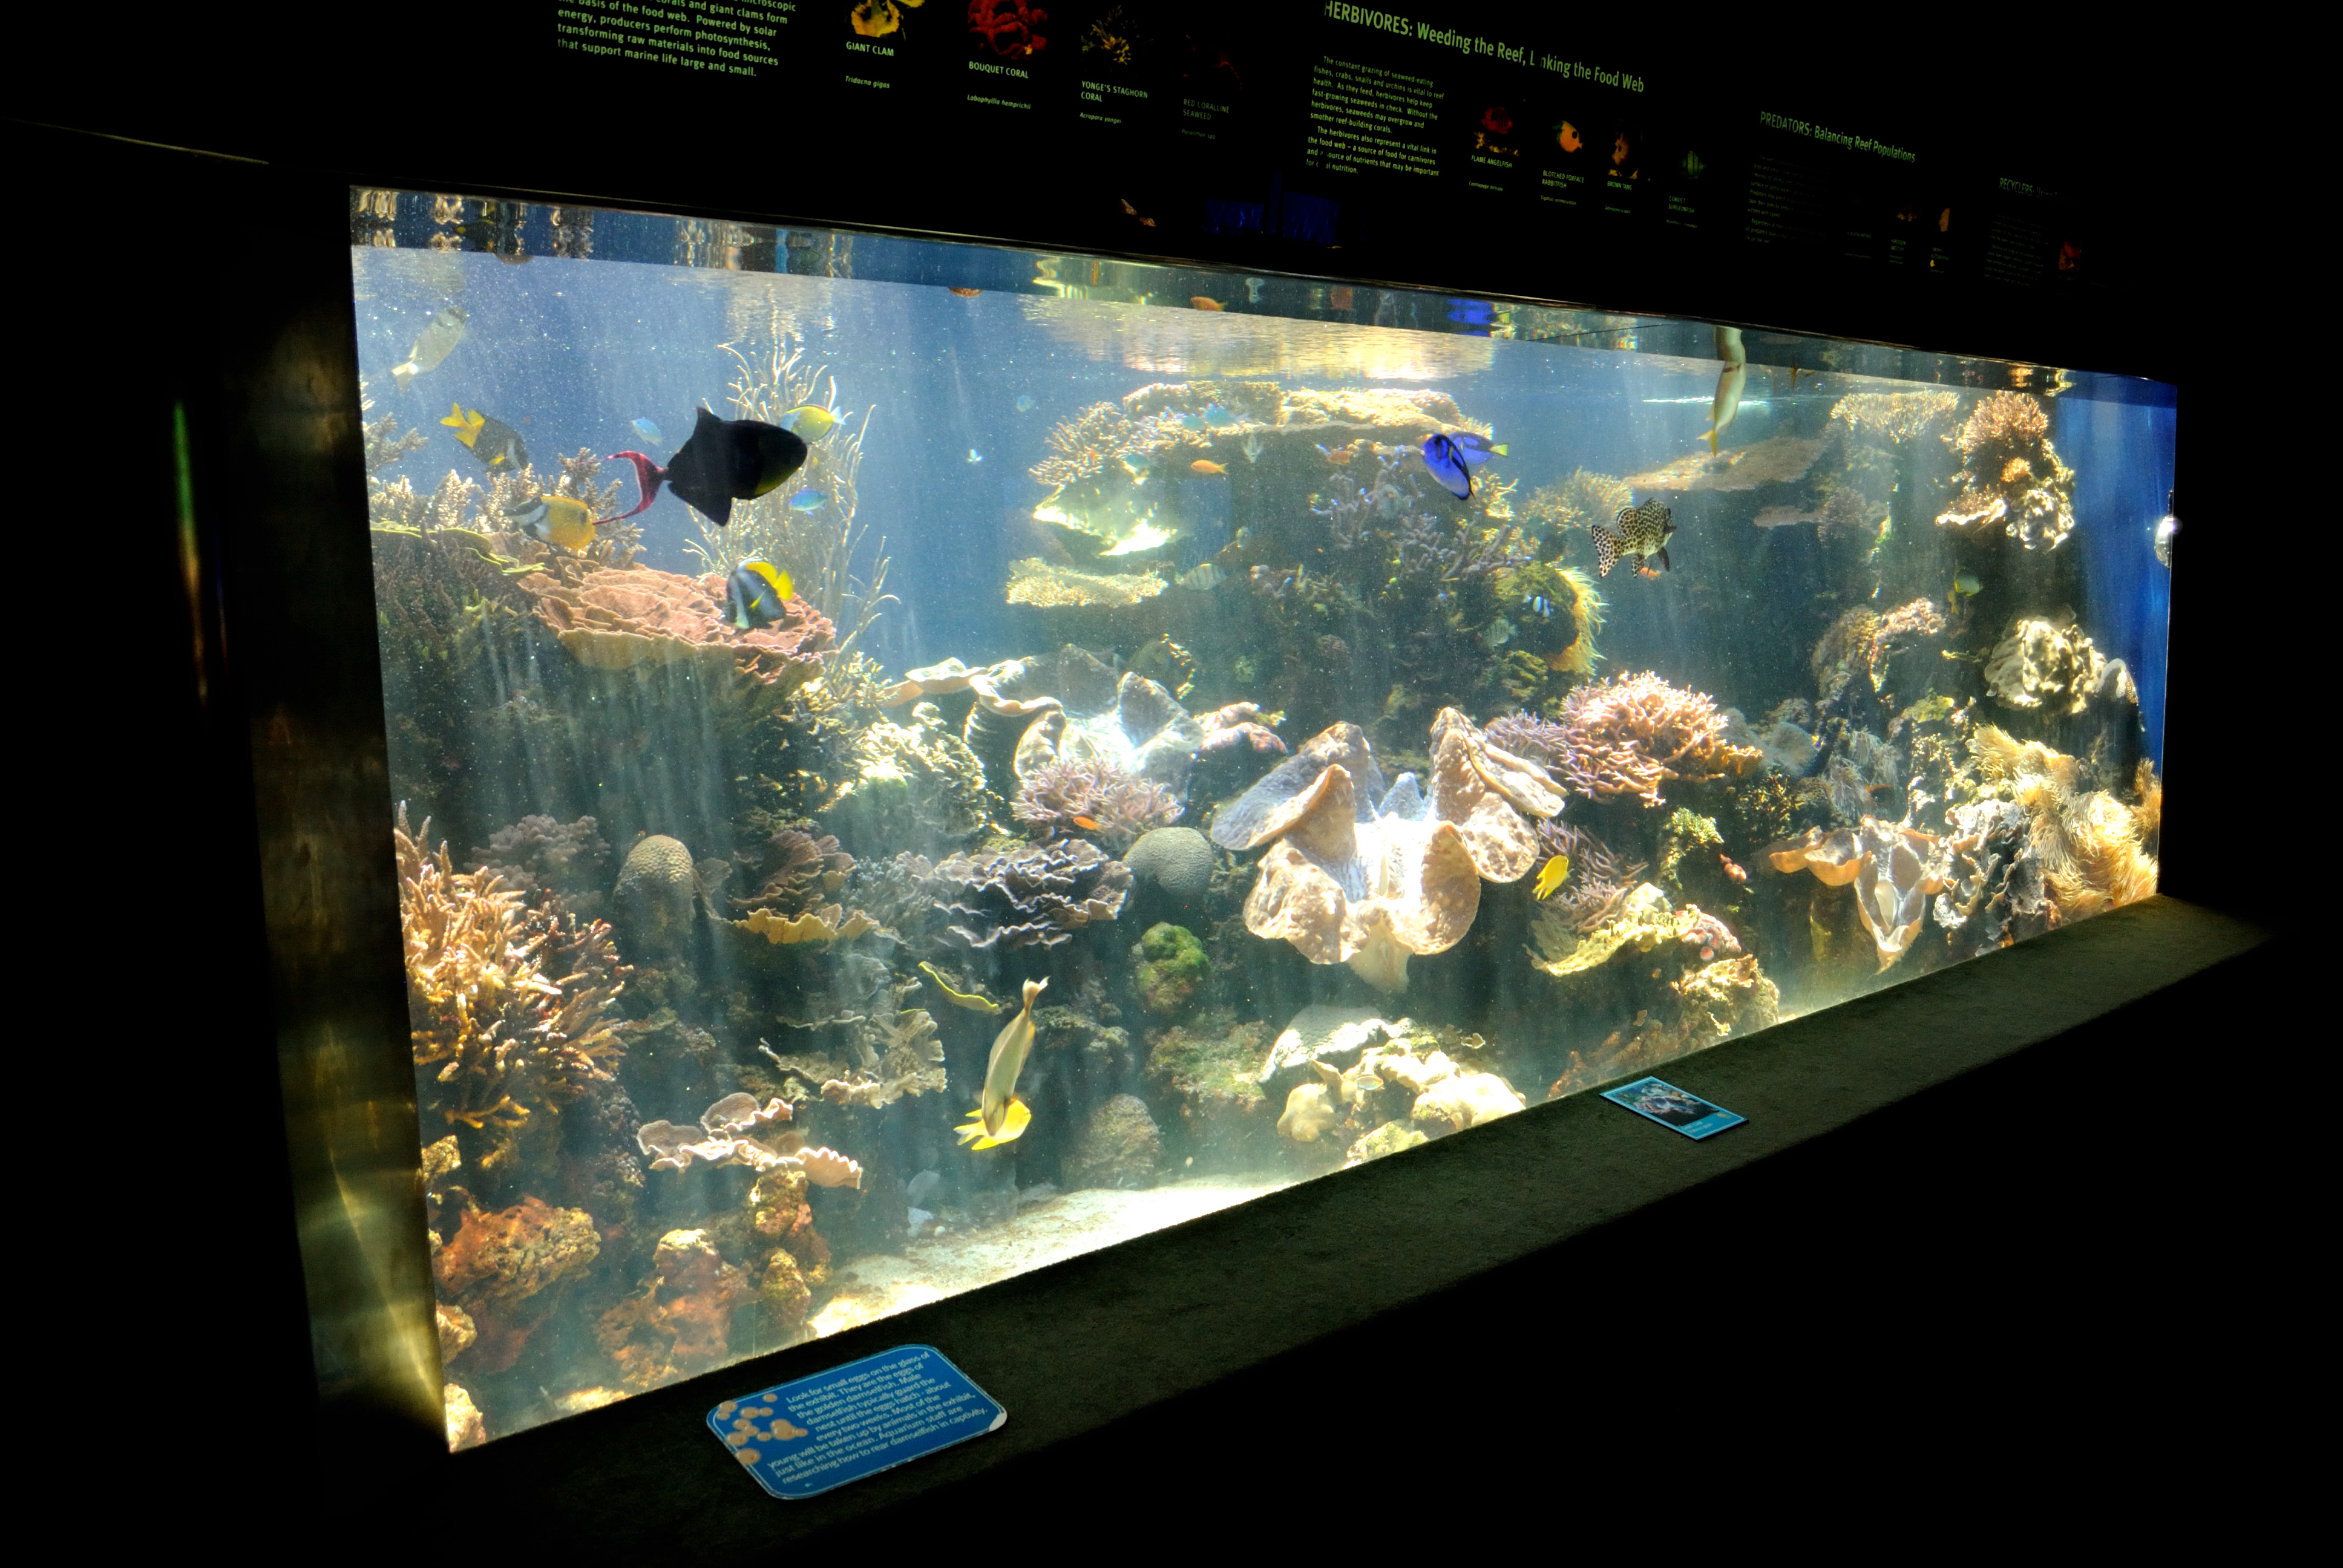 Aquarium fish tank sizes - File Fish Tank Honolulu Aquarium 4671604664 Jpg